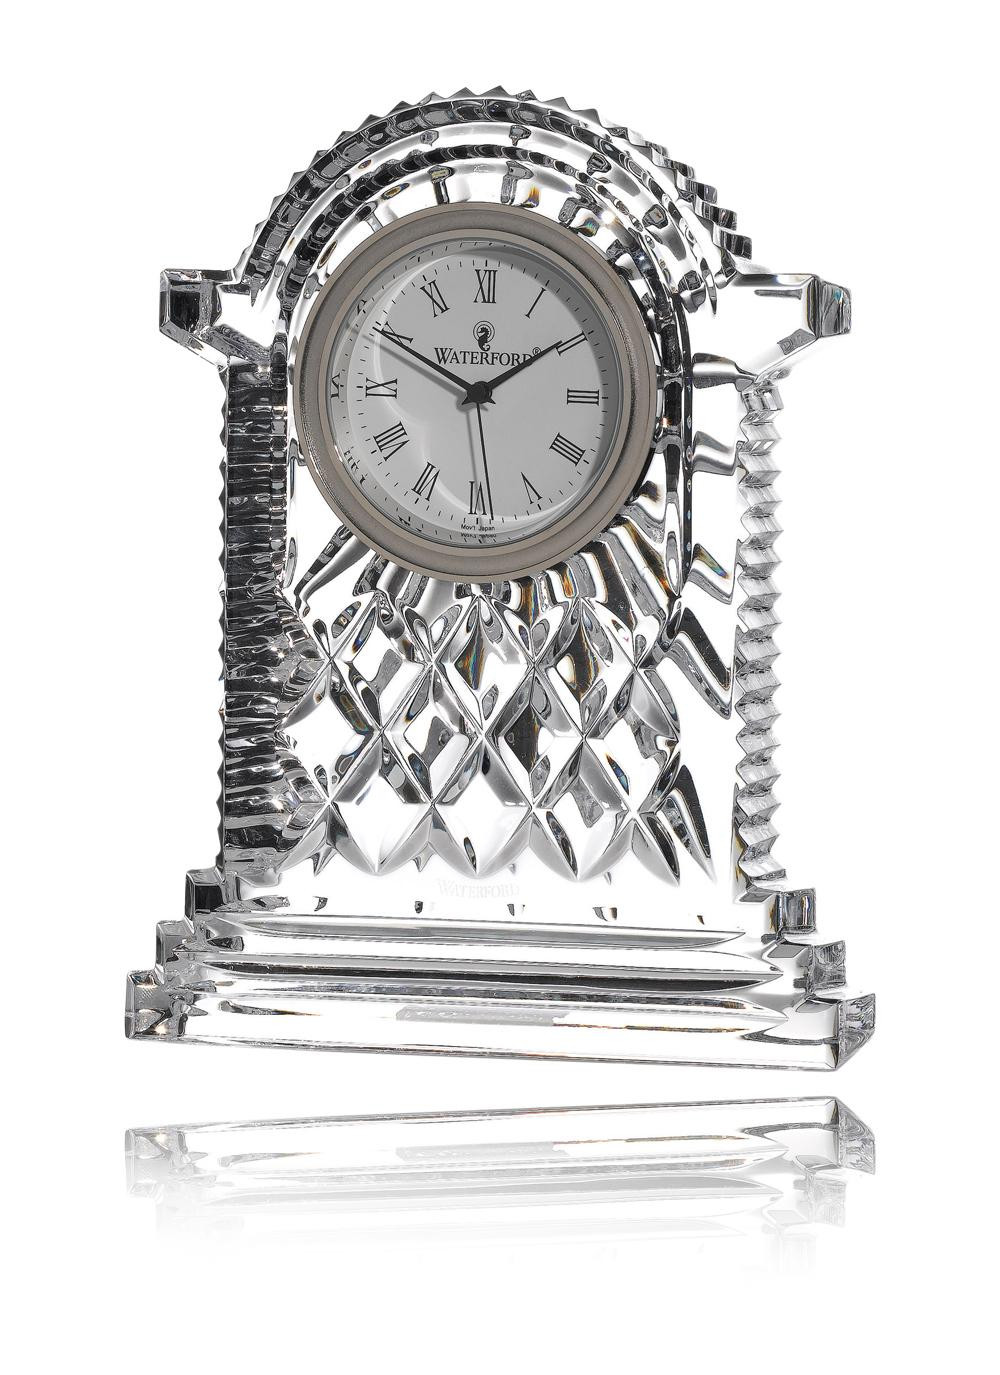 27 Trendy Waterford Giftology Lismore Candy Bud Vase 2021 free download waterford giftology lismore candy bud vase of waterford crystal gifts irish waterford crystal collection intended for waterford crystal lismore carriage clock